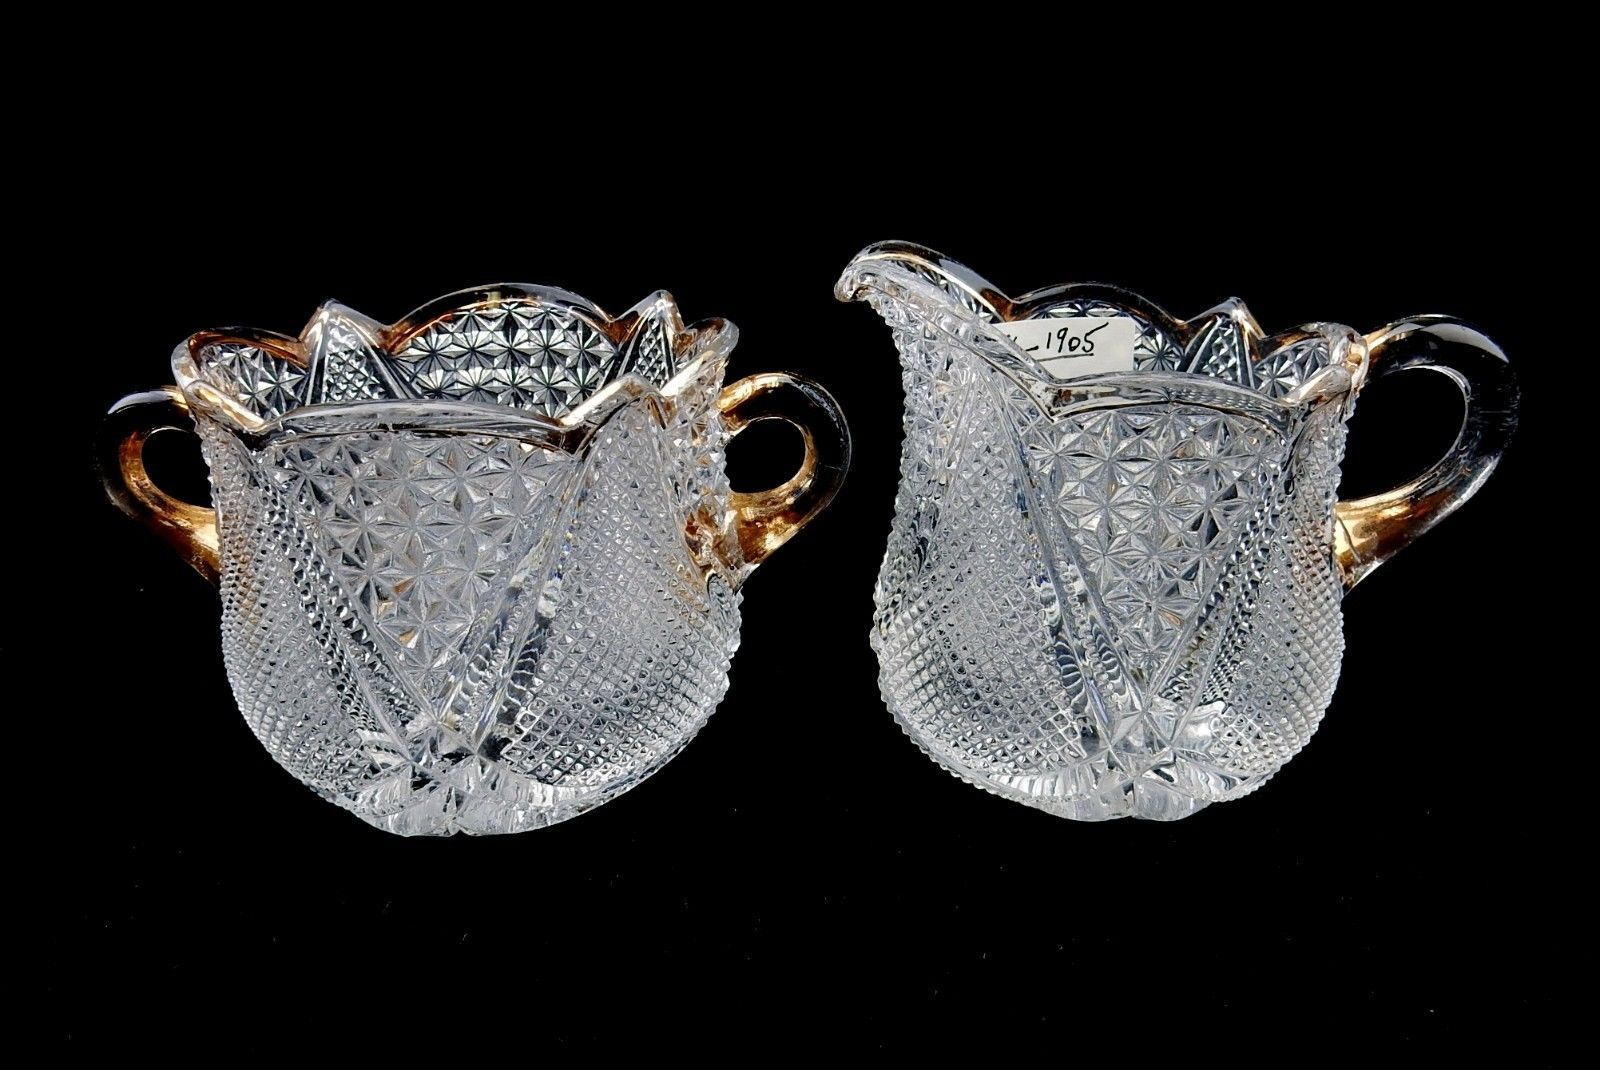 Primary image for Heisey Cream and Sugar Set, Fandango Pattern #1201, Very Early Heisey, Gold Trim